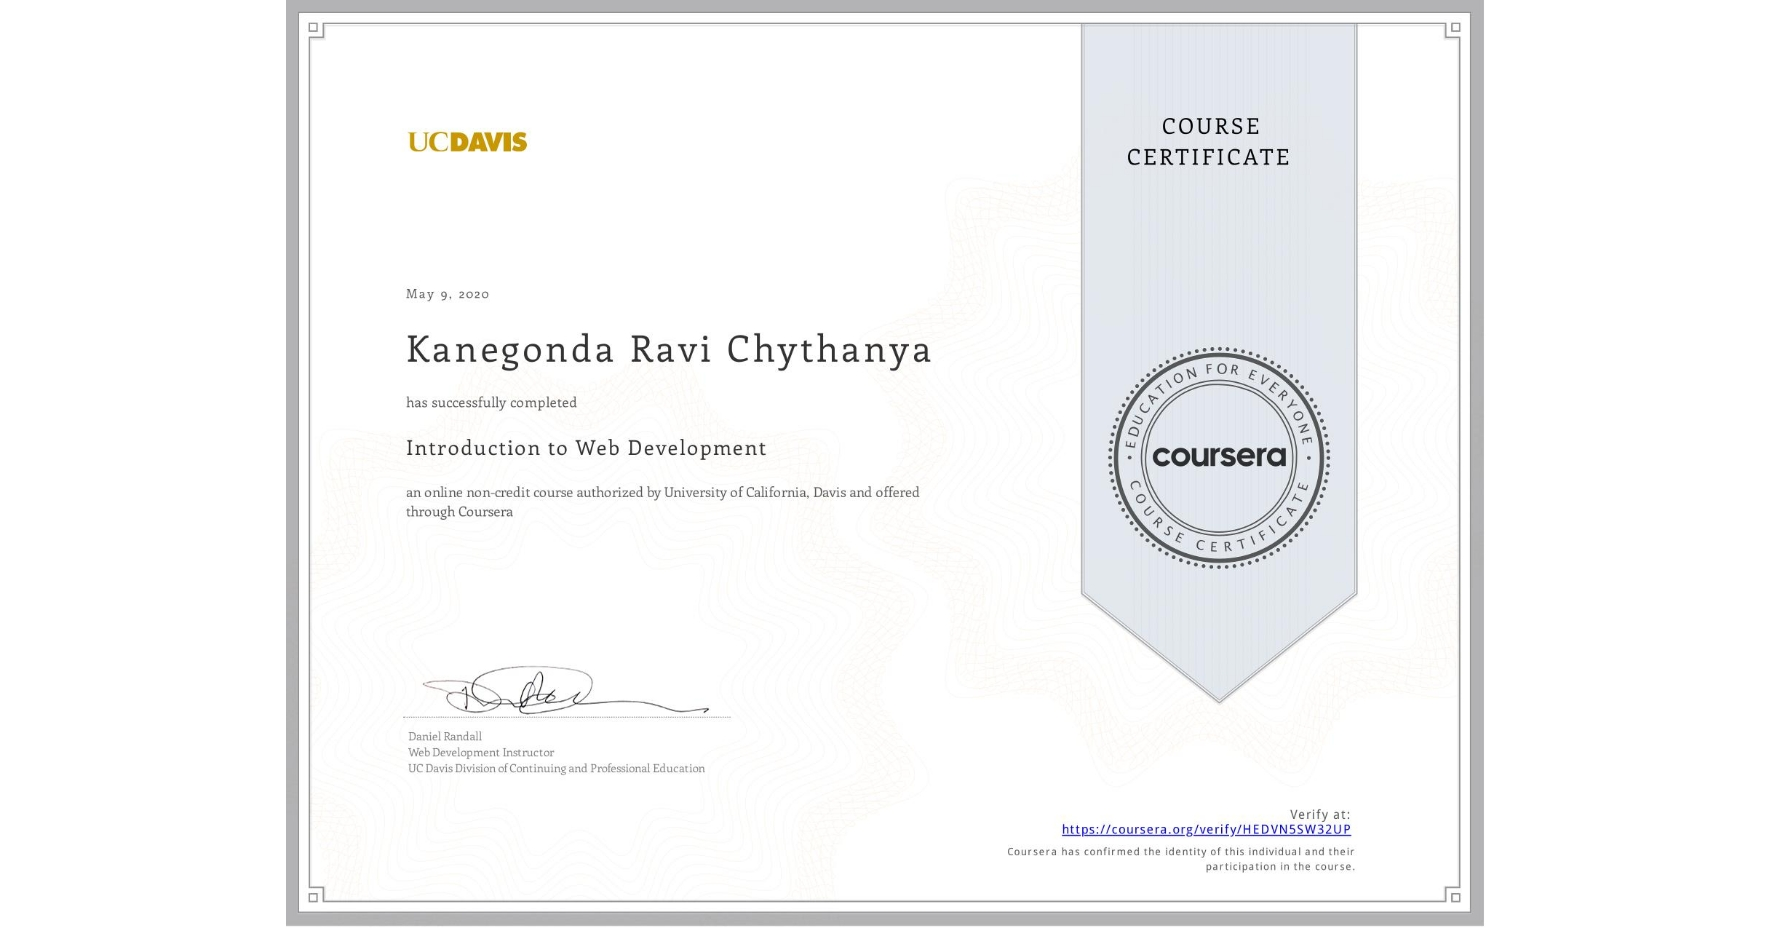 View certificate for Kanegonda Ravi Chythanya, Introduction to Web Development, an online non-credit course authorized by University of California, Davis and offered through Coursera